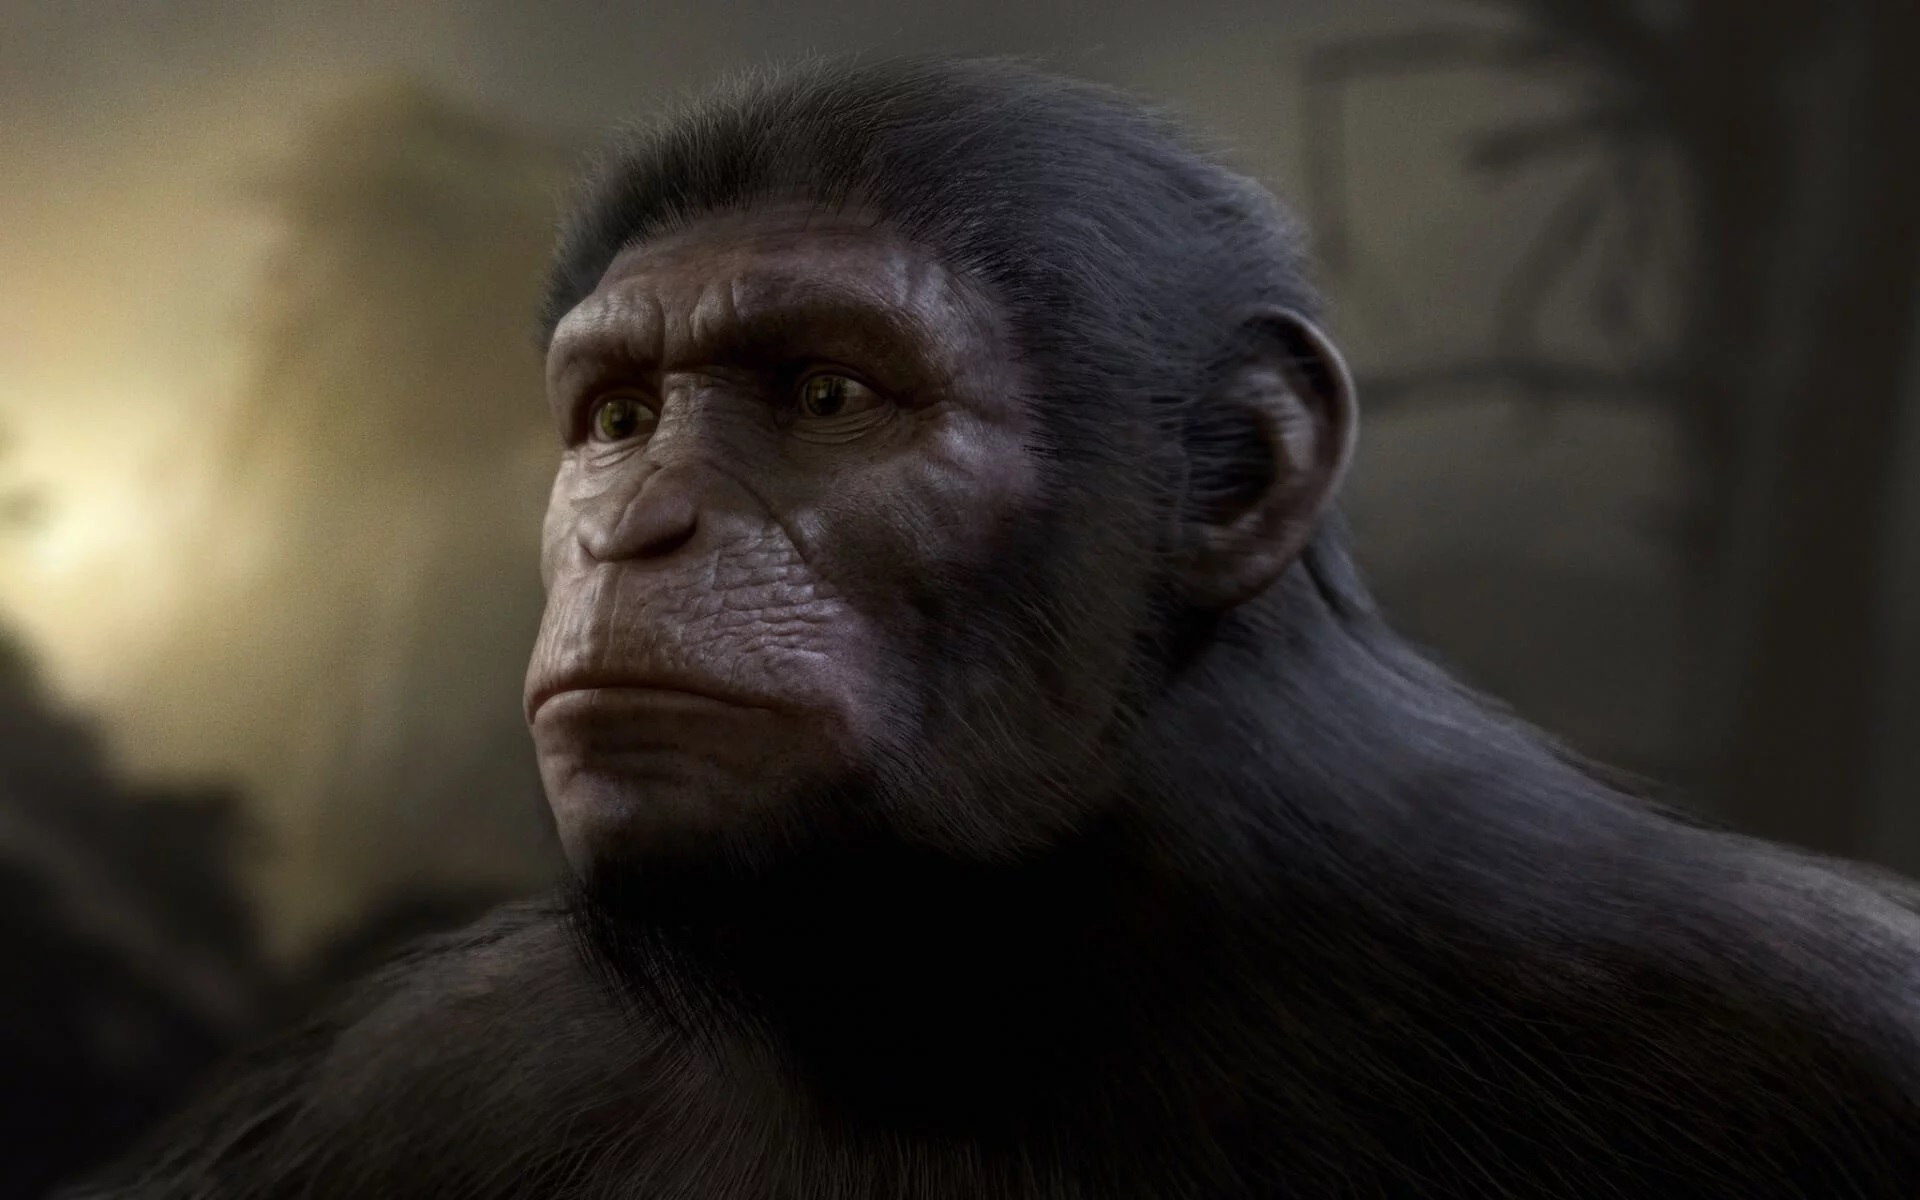 Bryn | Planet of the Apes Wiki | FANDOM powered by Wikia